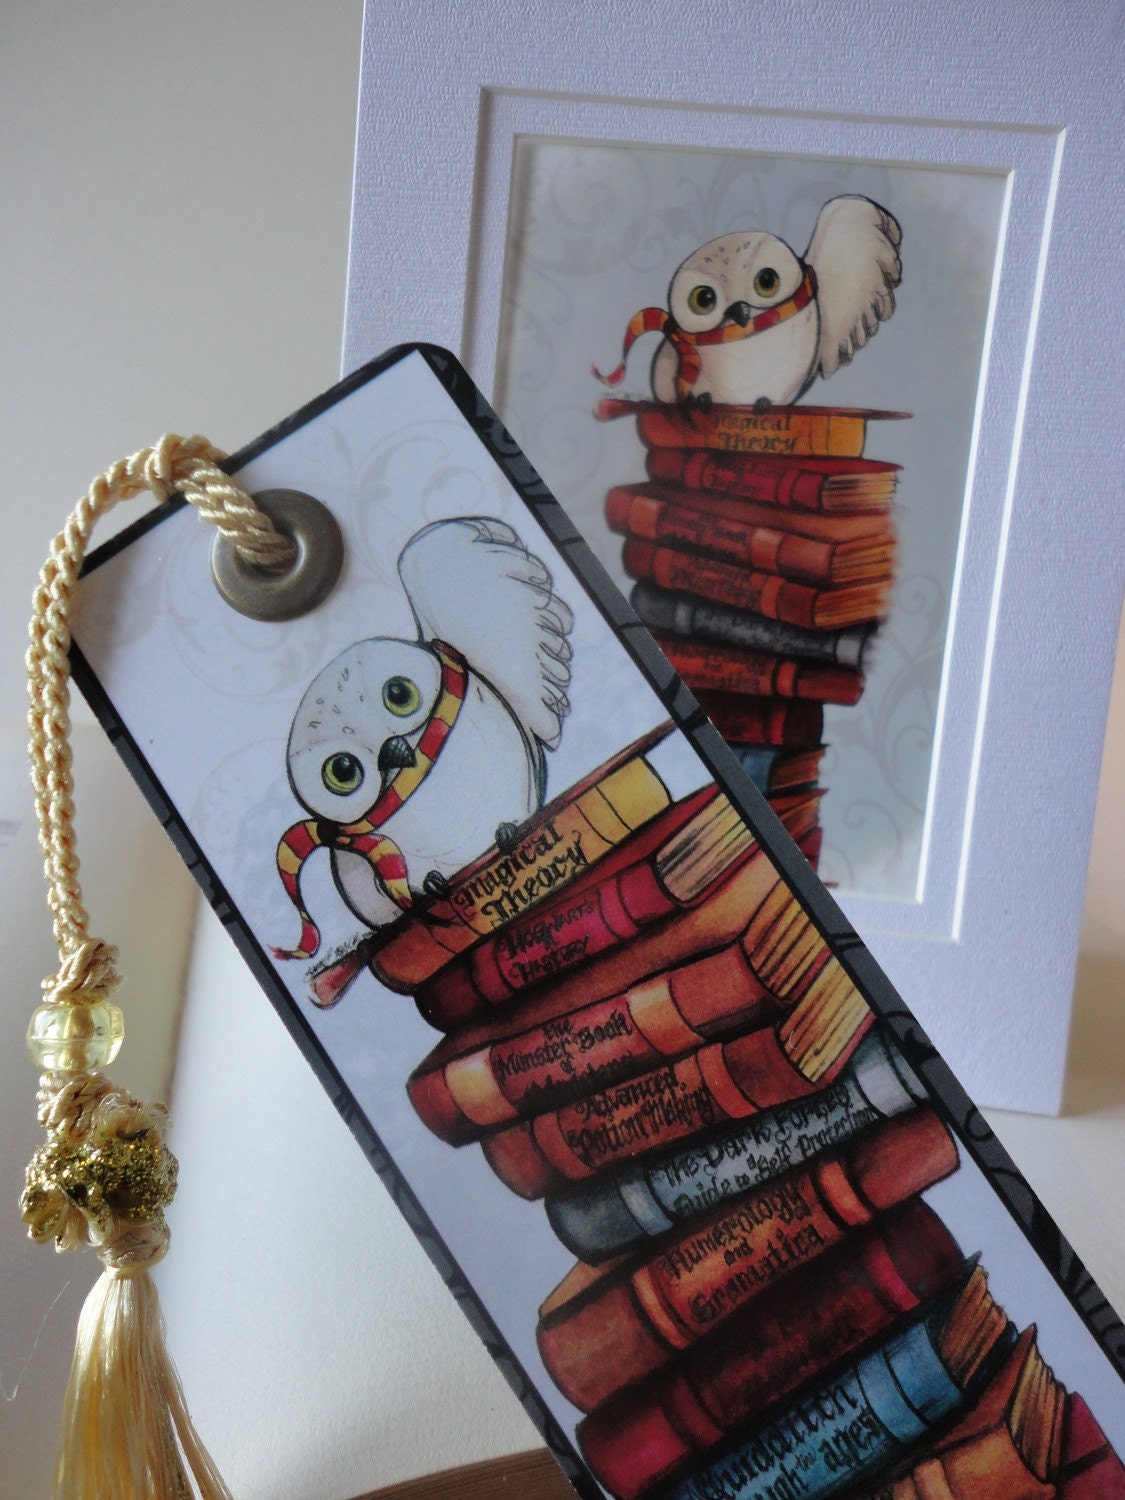 This is a photo of Sassy Printable Harry Potter Bookmarks